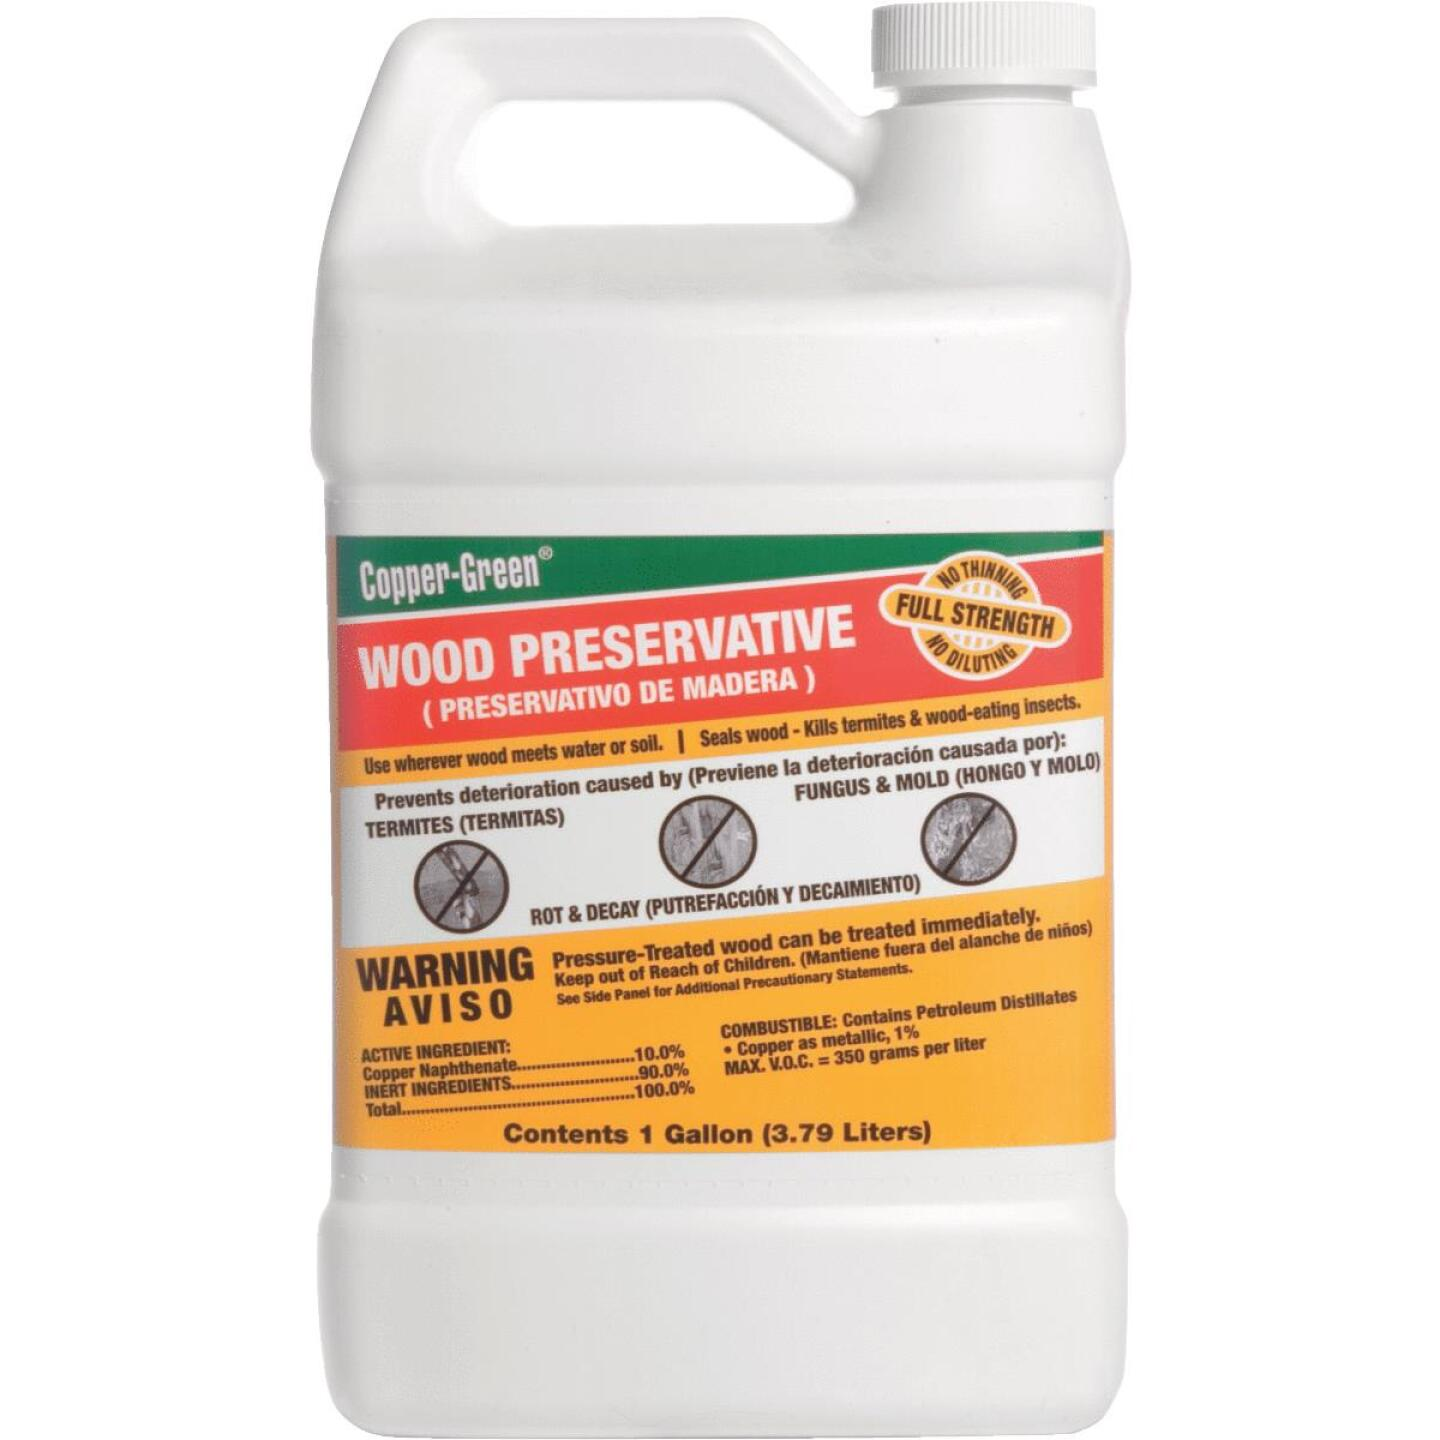 Copper-Green Exterior Wood Preservative, 1 Gal., Green Image 1